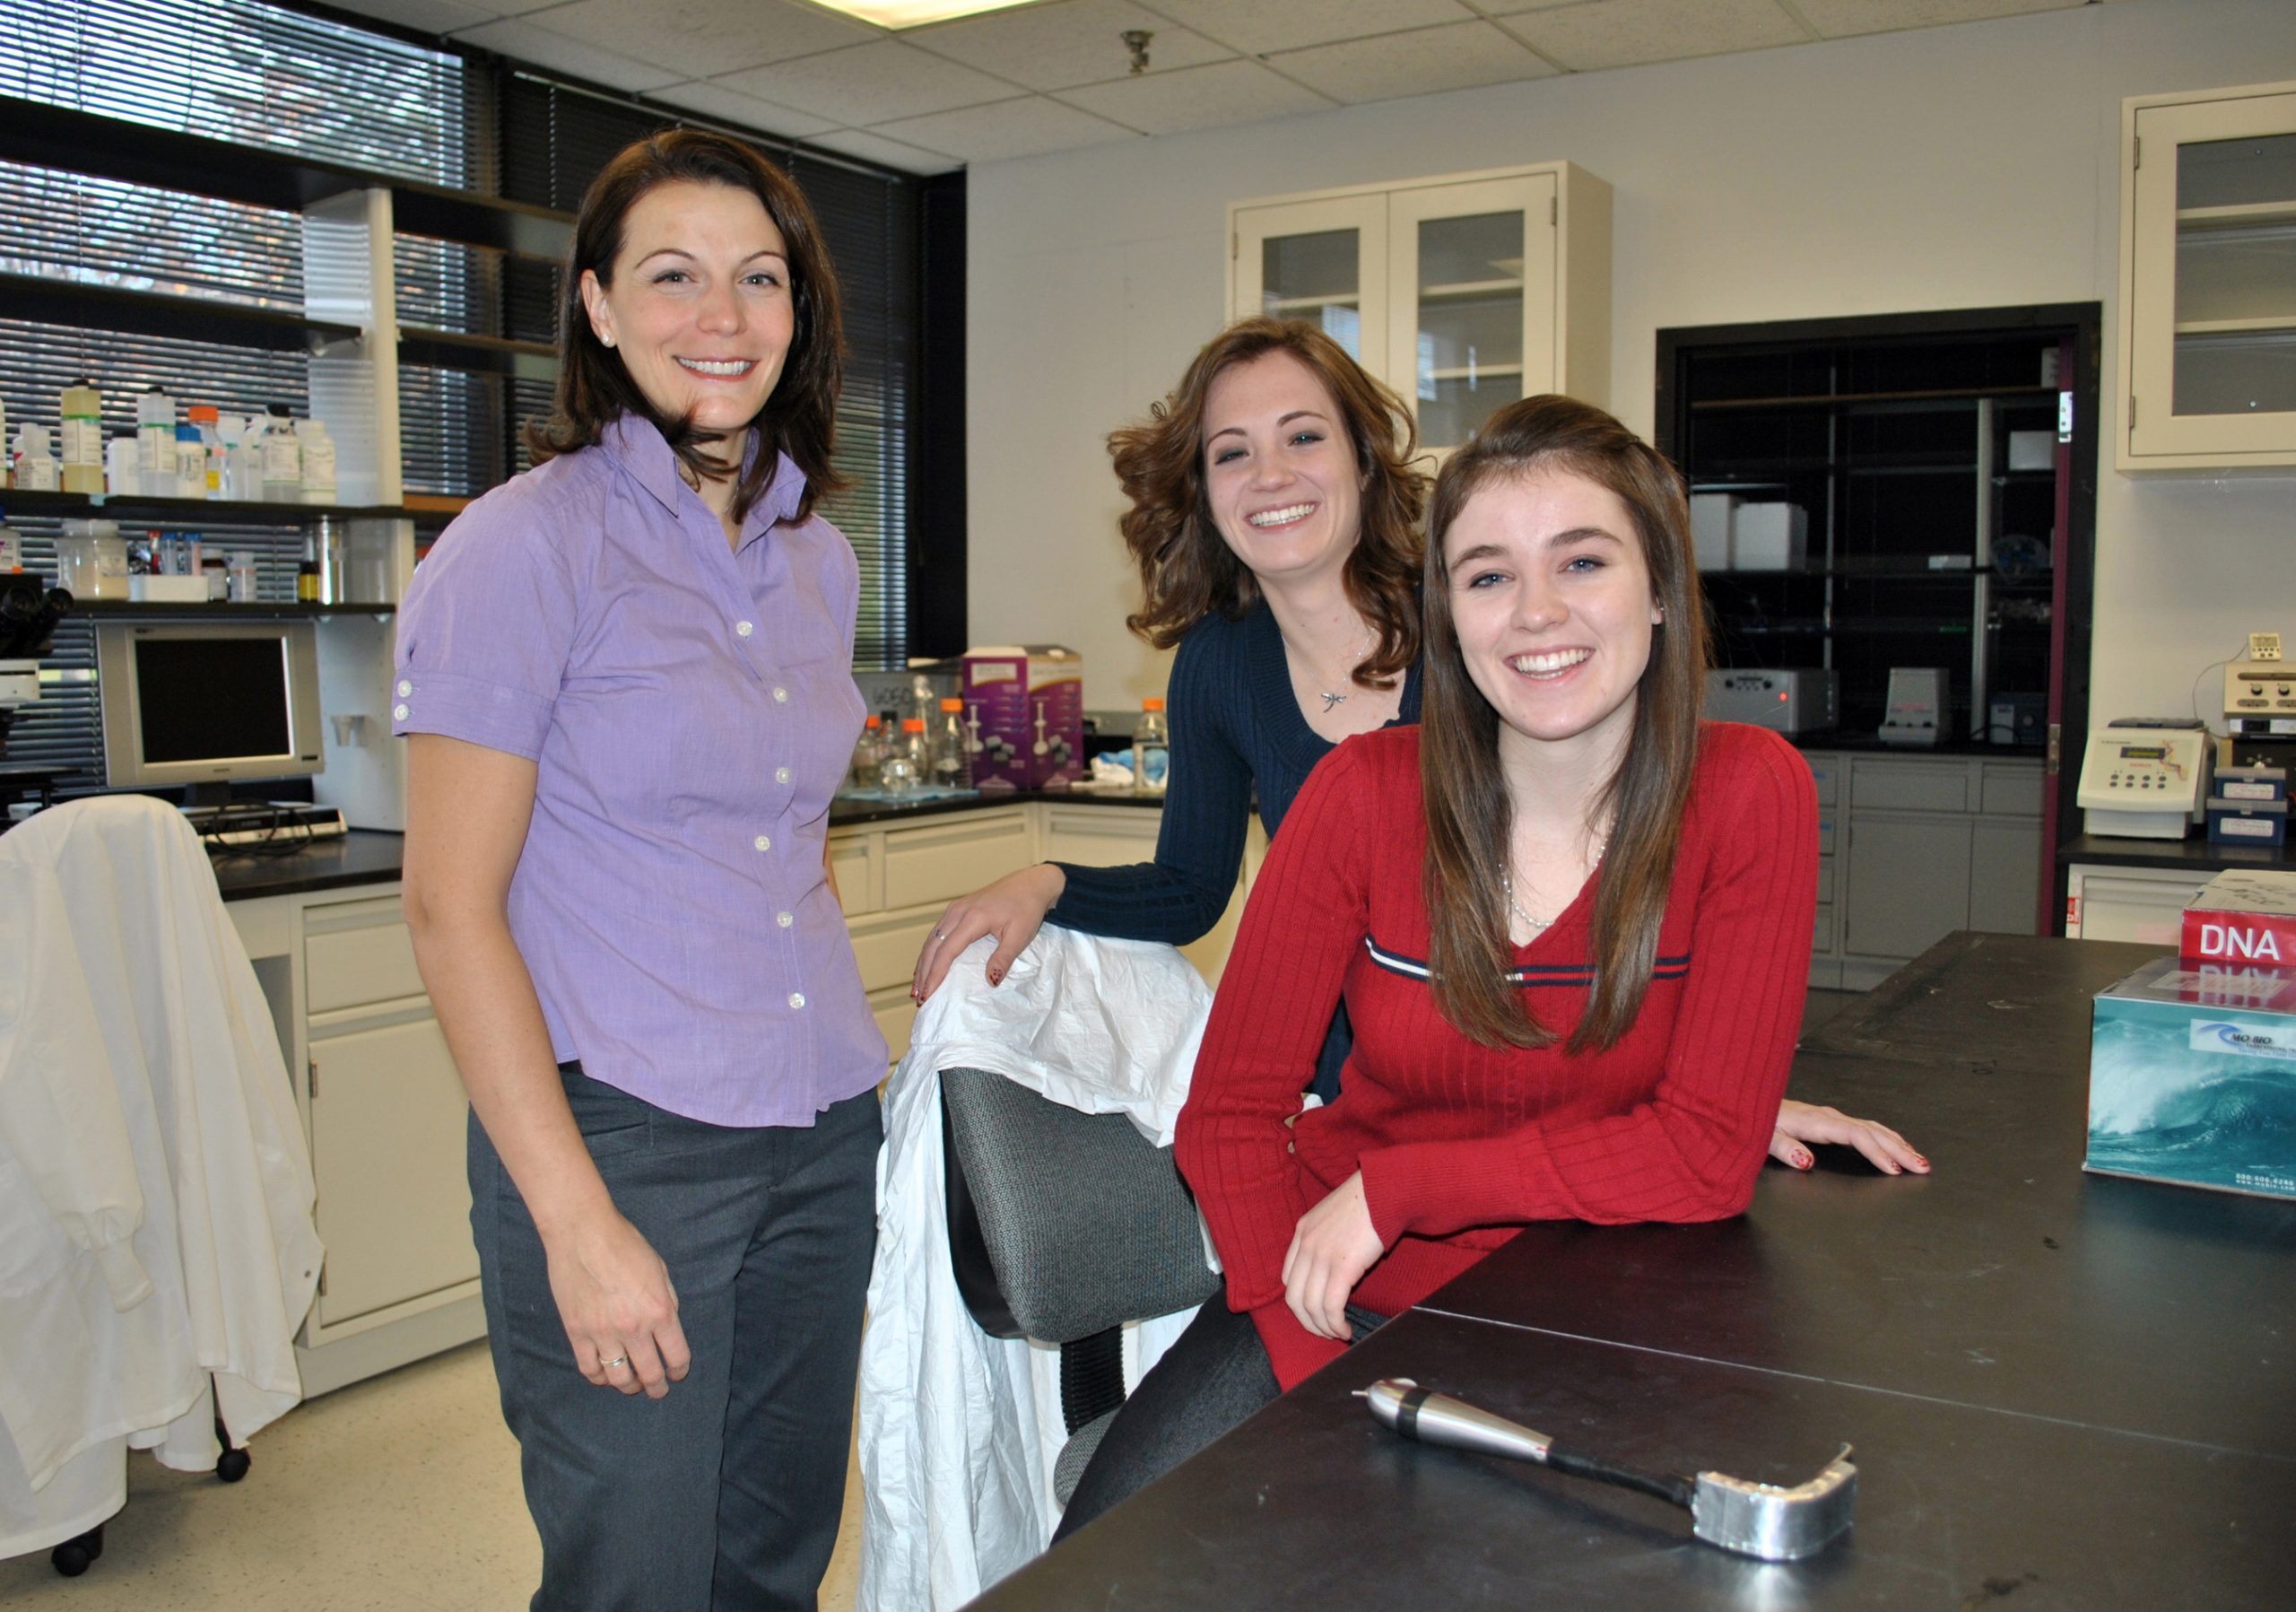 Sophomore bioengineering students Jessica Ashmead (center) and Annicka Carter (right) are behind OptiGuide, a new medical device for lighting incisions during surgery. Also pictured is Dr. Holly Holman, a faculty member in the Department of Bioengineering and the team's mentor.